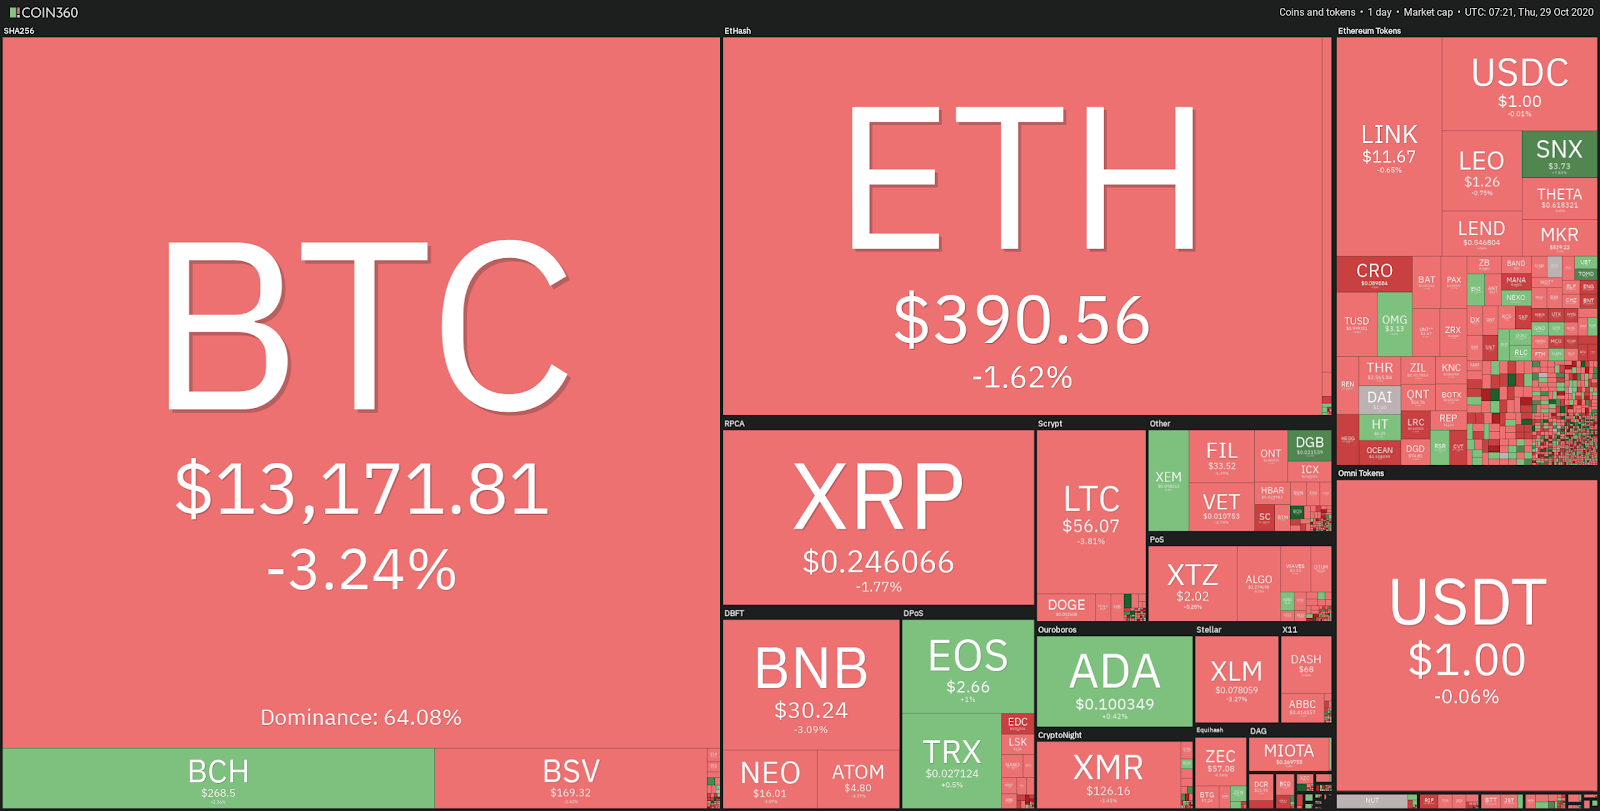 Top cryptocurrency prices - 10/29